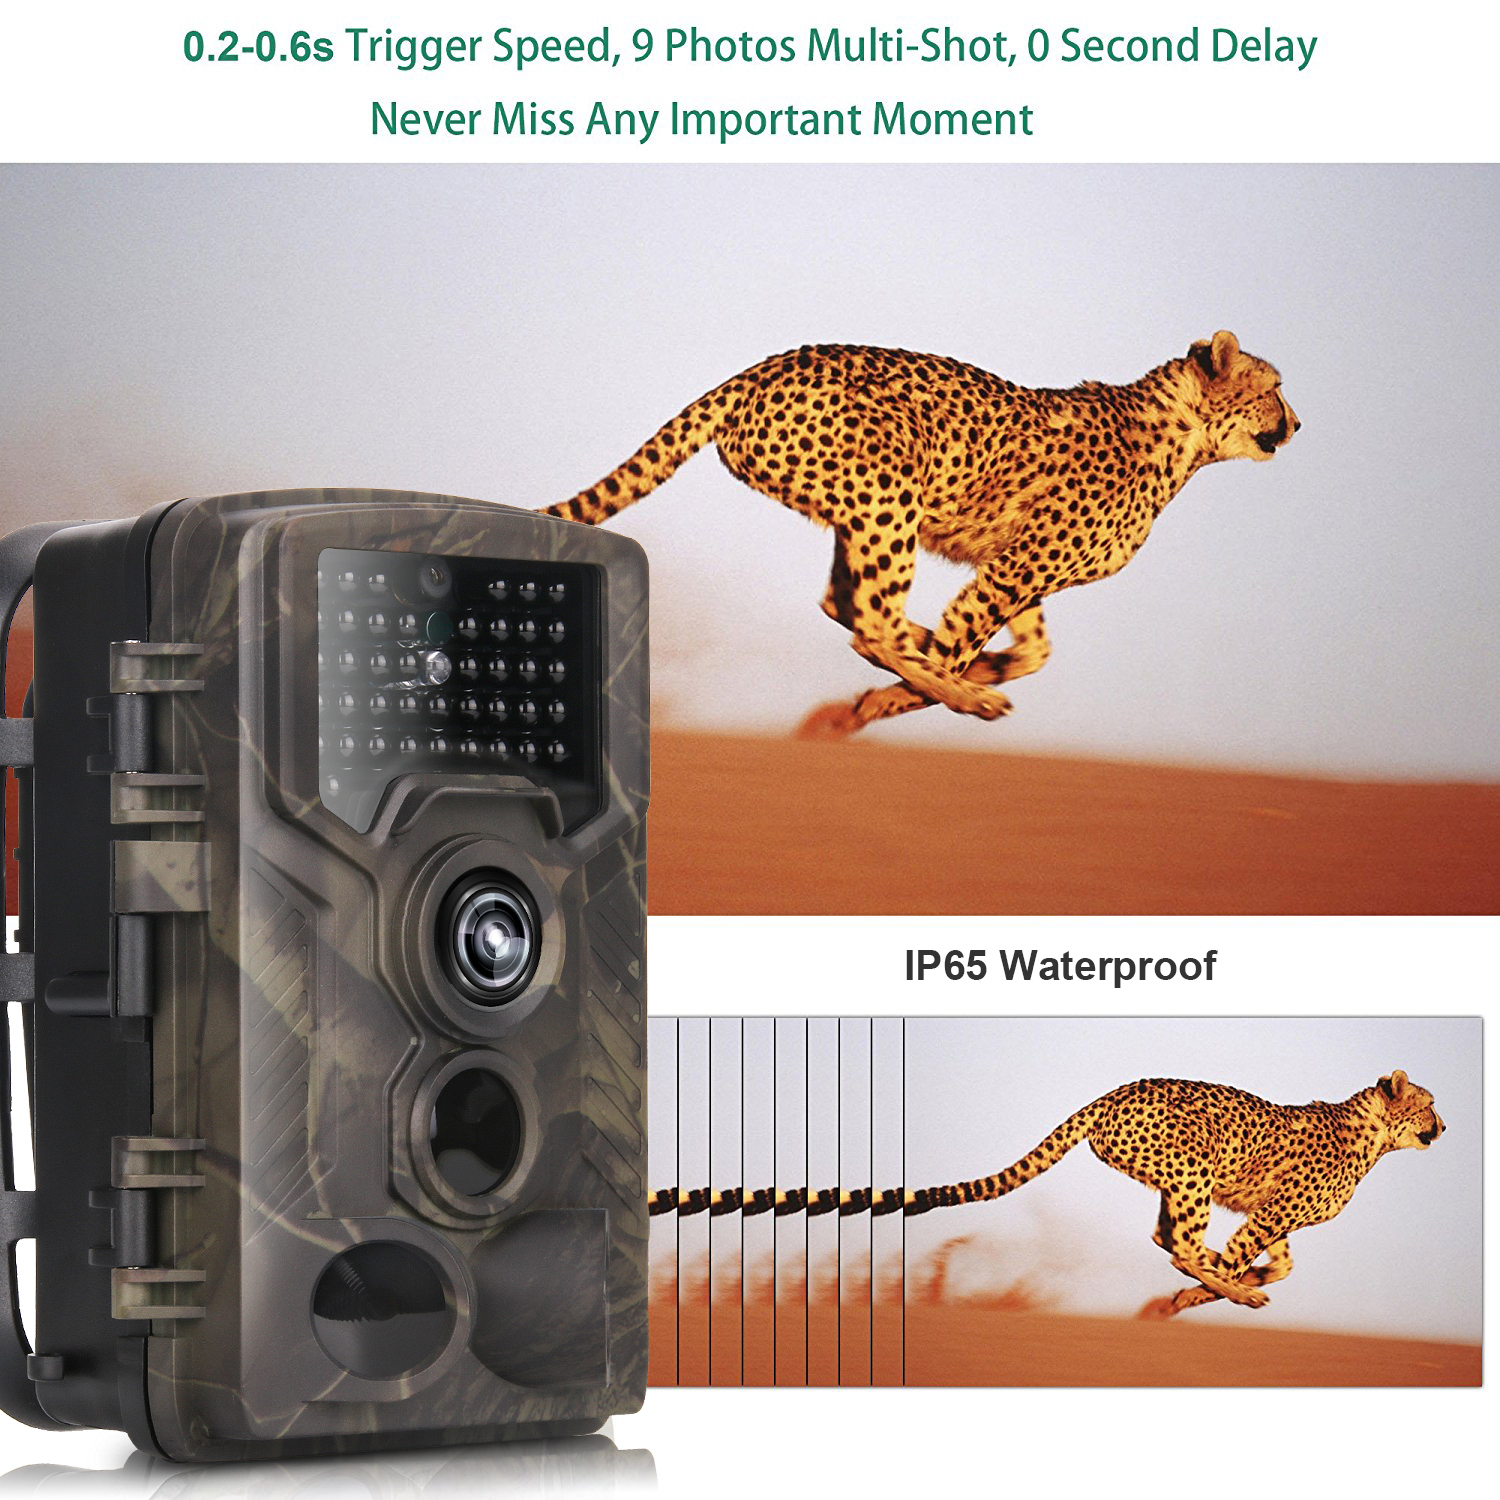 Wireless Wildlife Camera.jpg